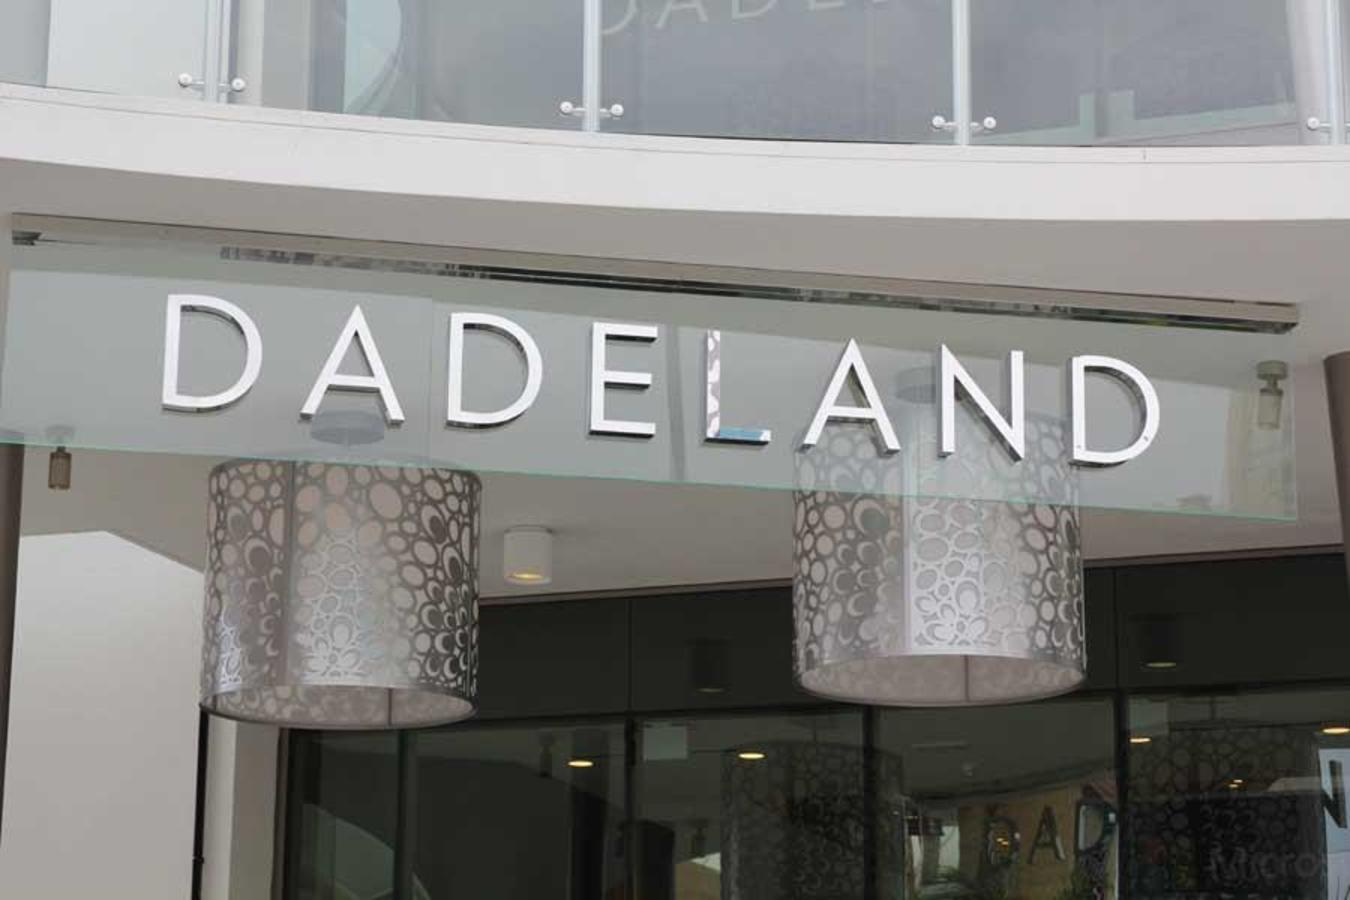 Dadeland Mall in Kendall, FL on